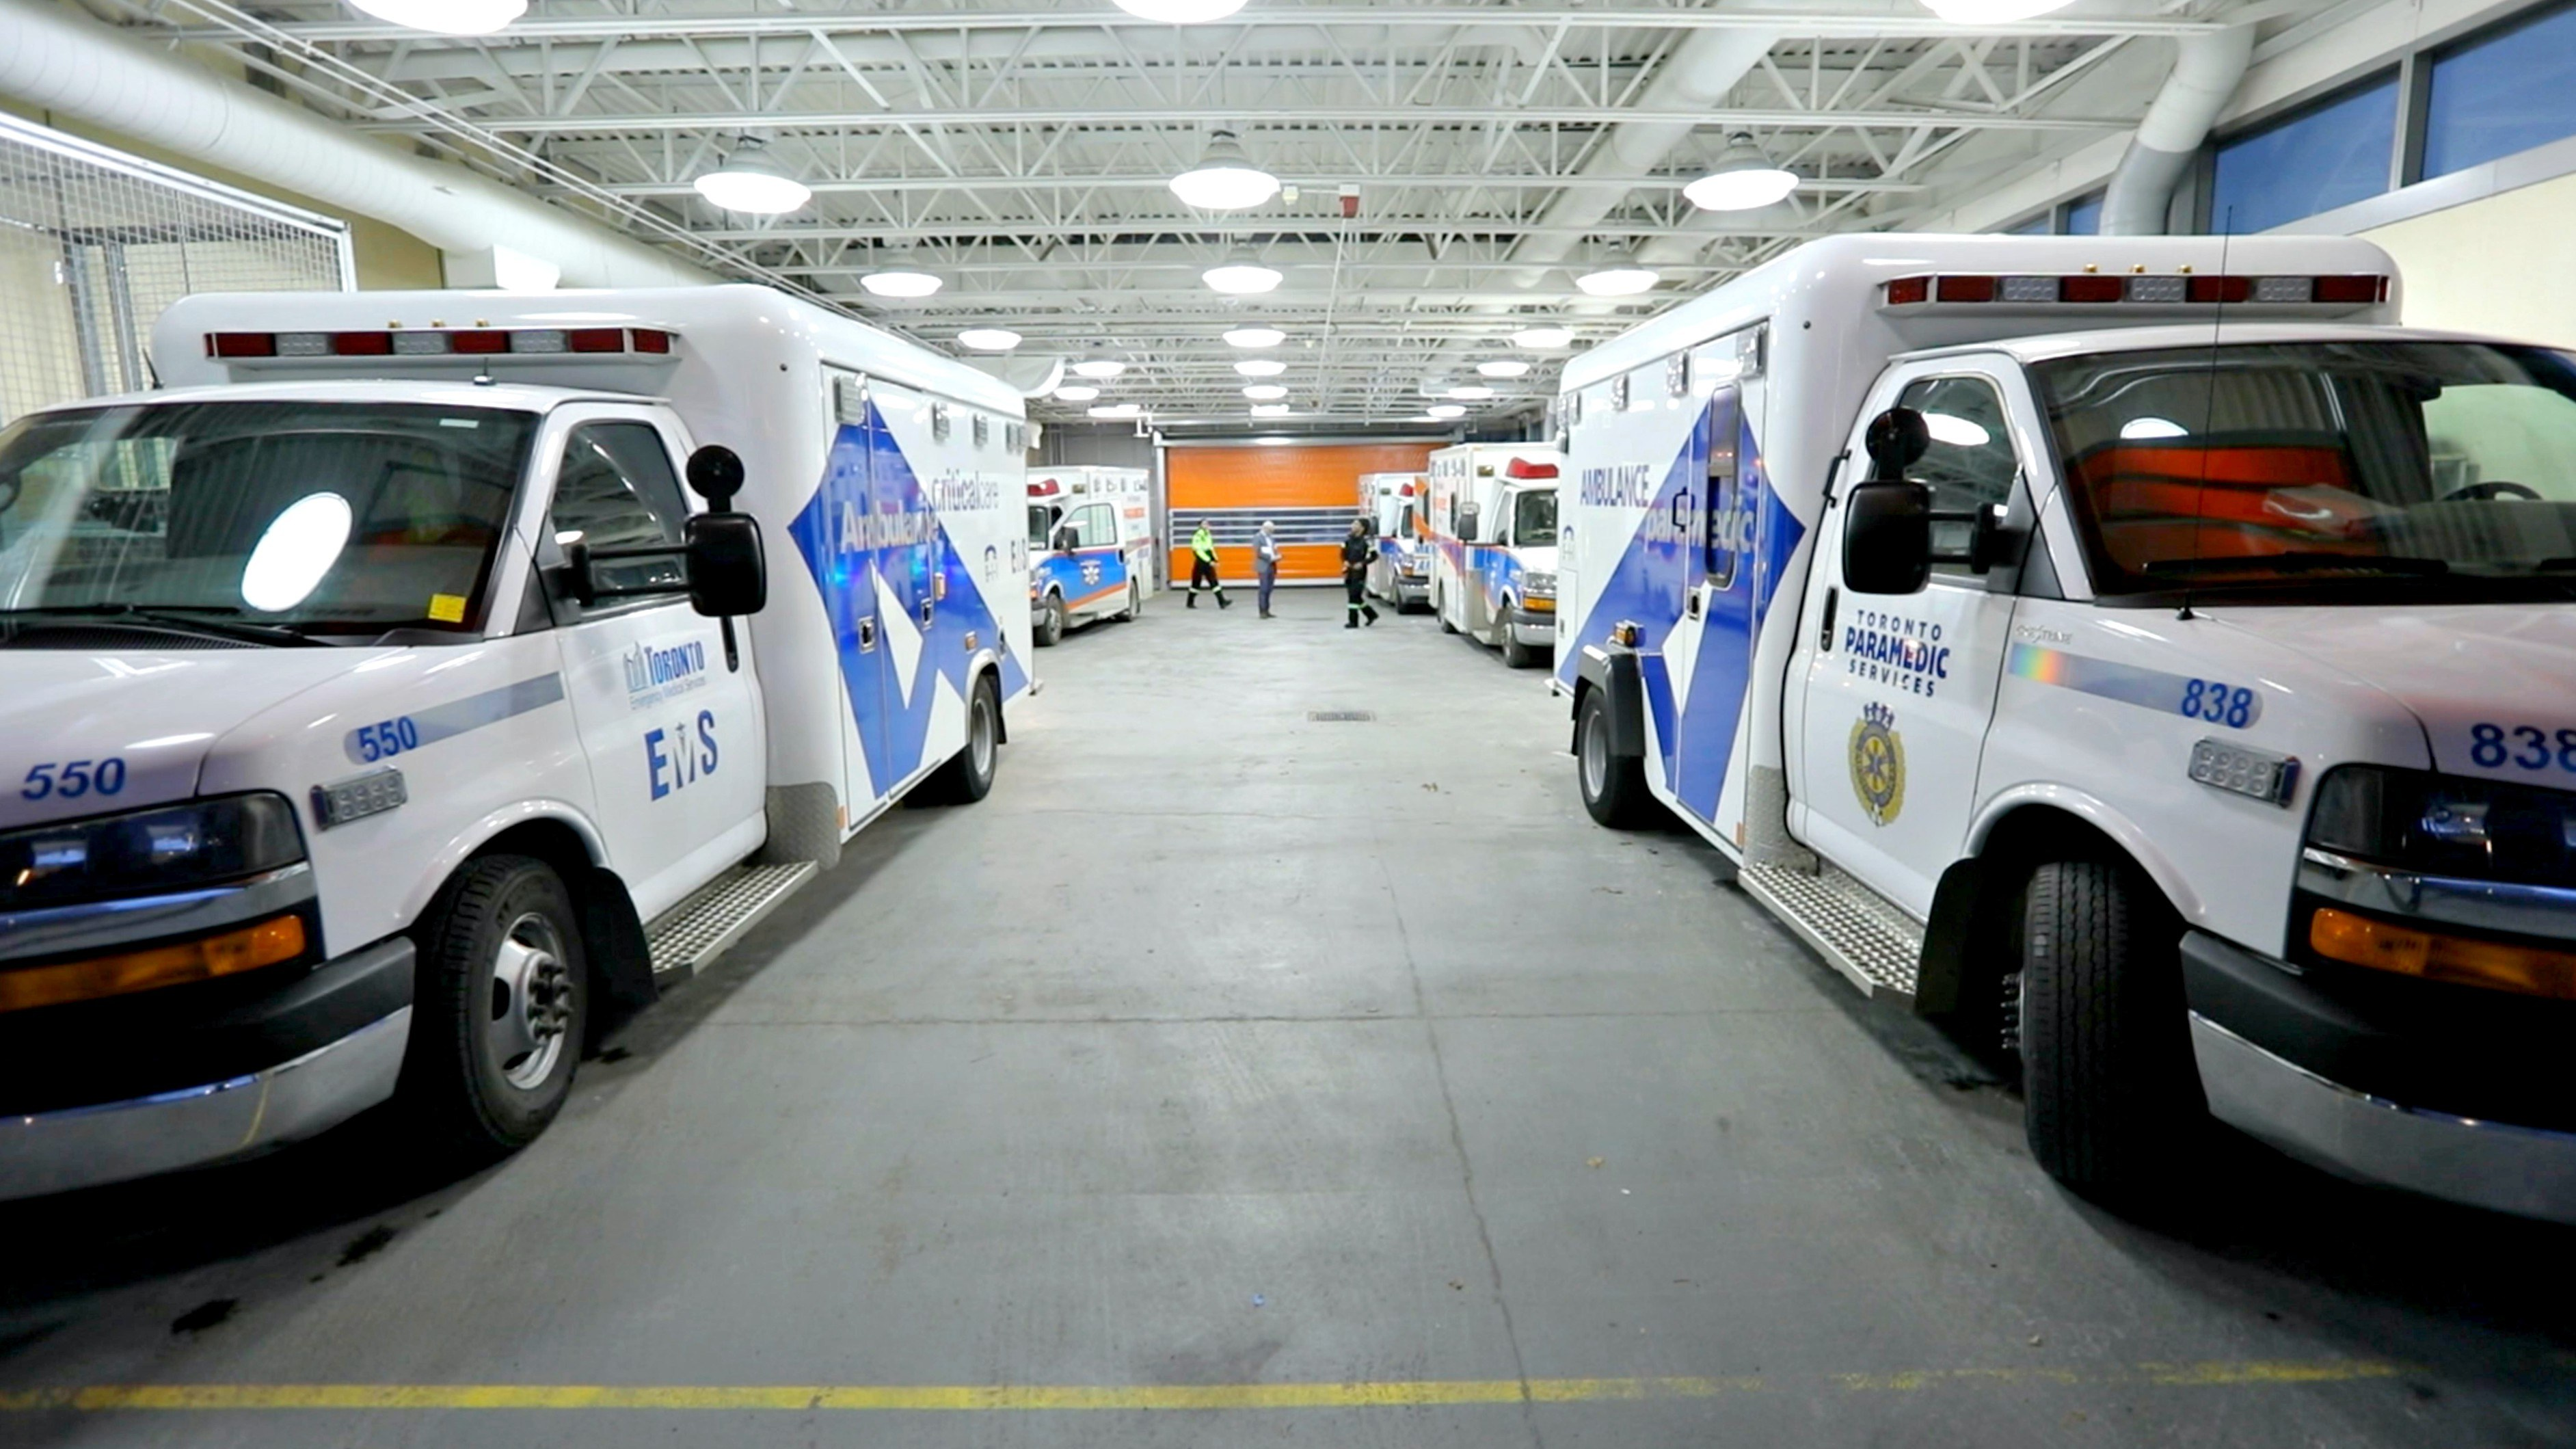 Paramedics are coming and going 24/7 through the ambulance bay. (Paul Borkwood/CBC News)